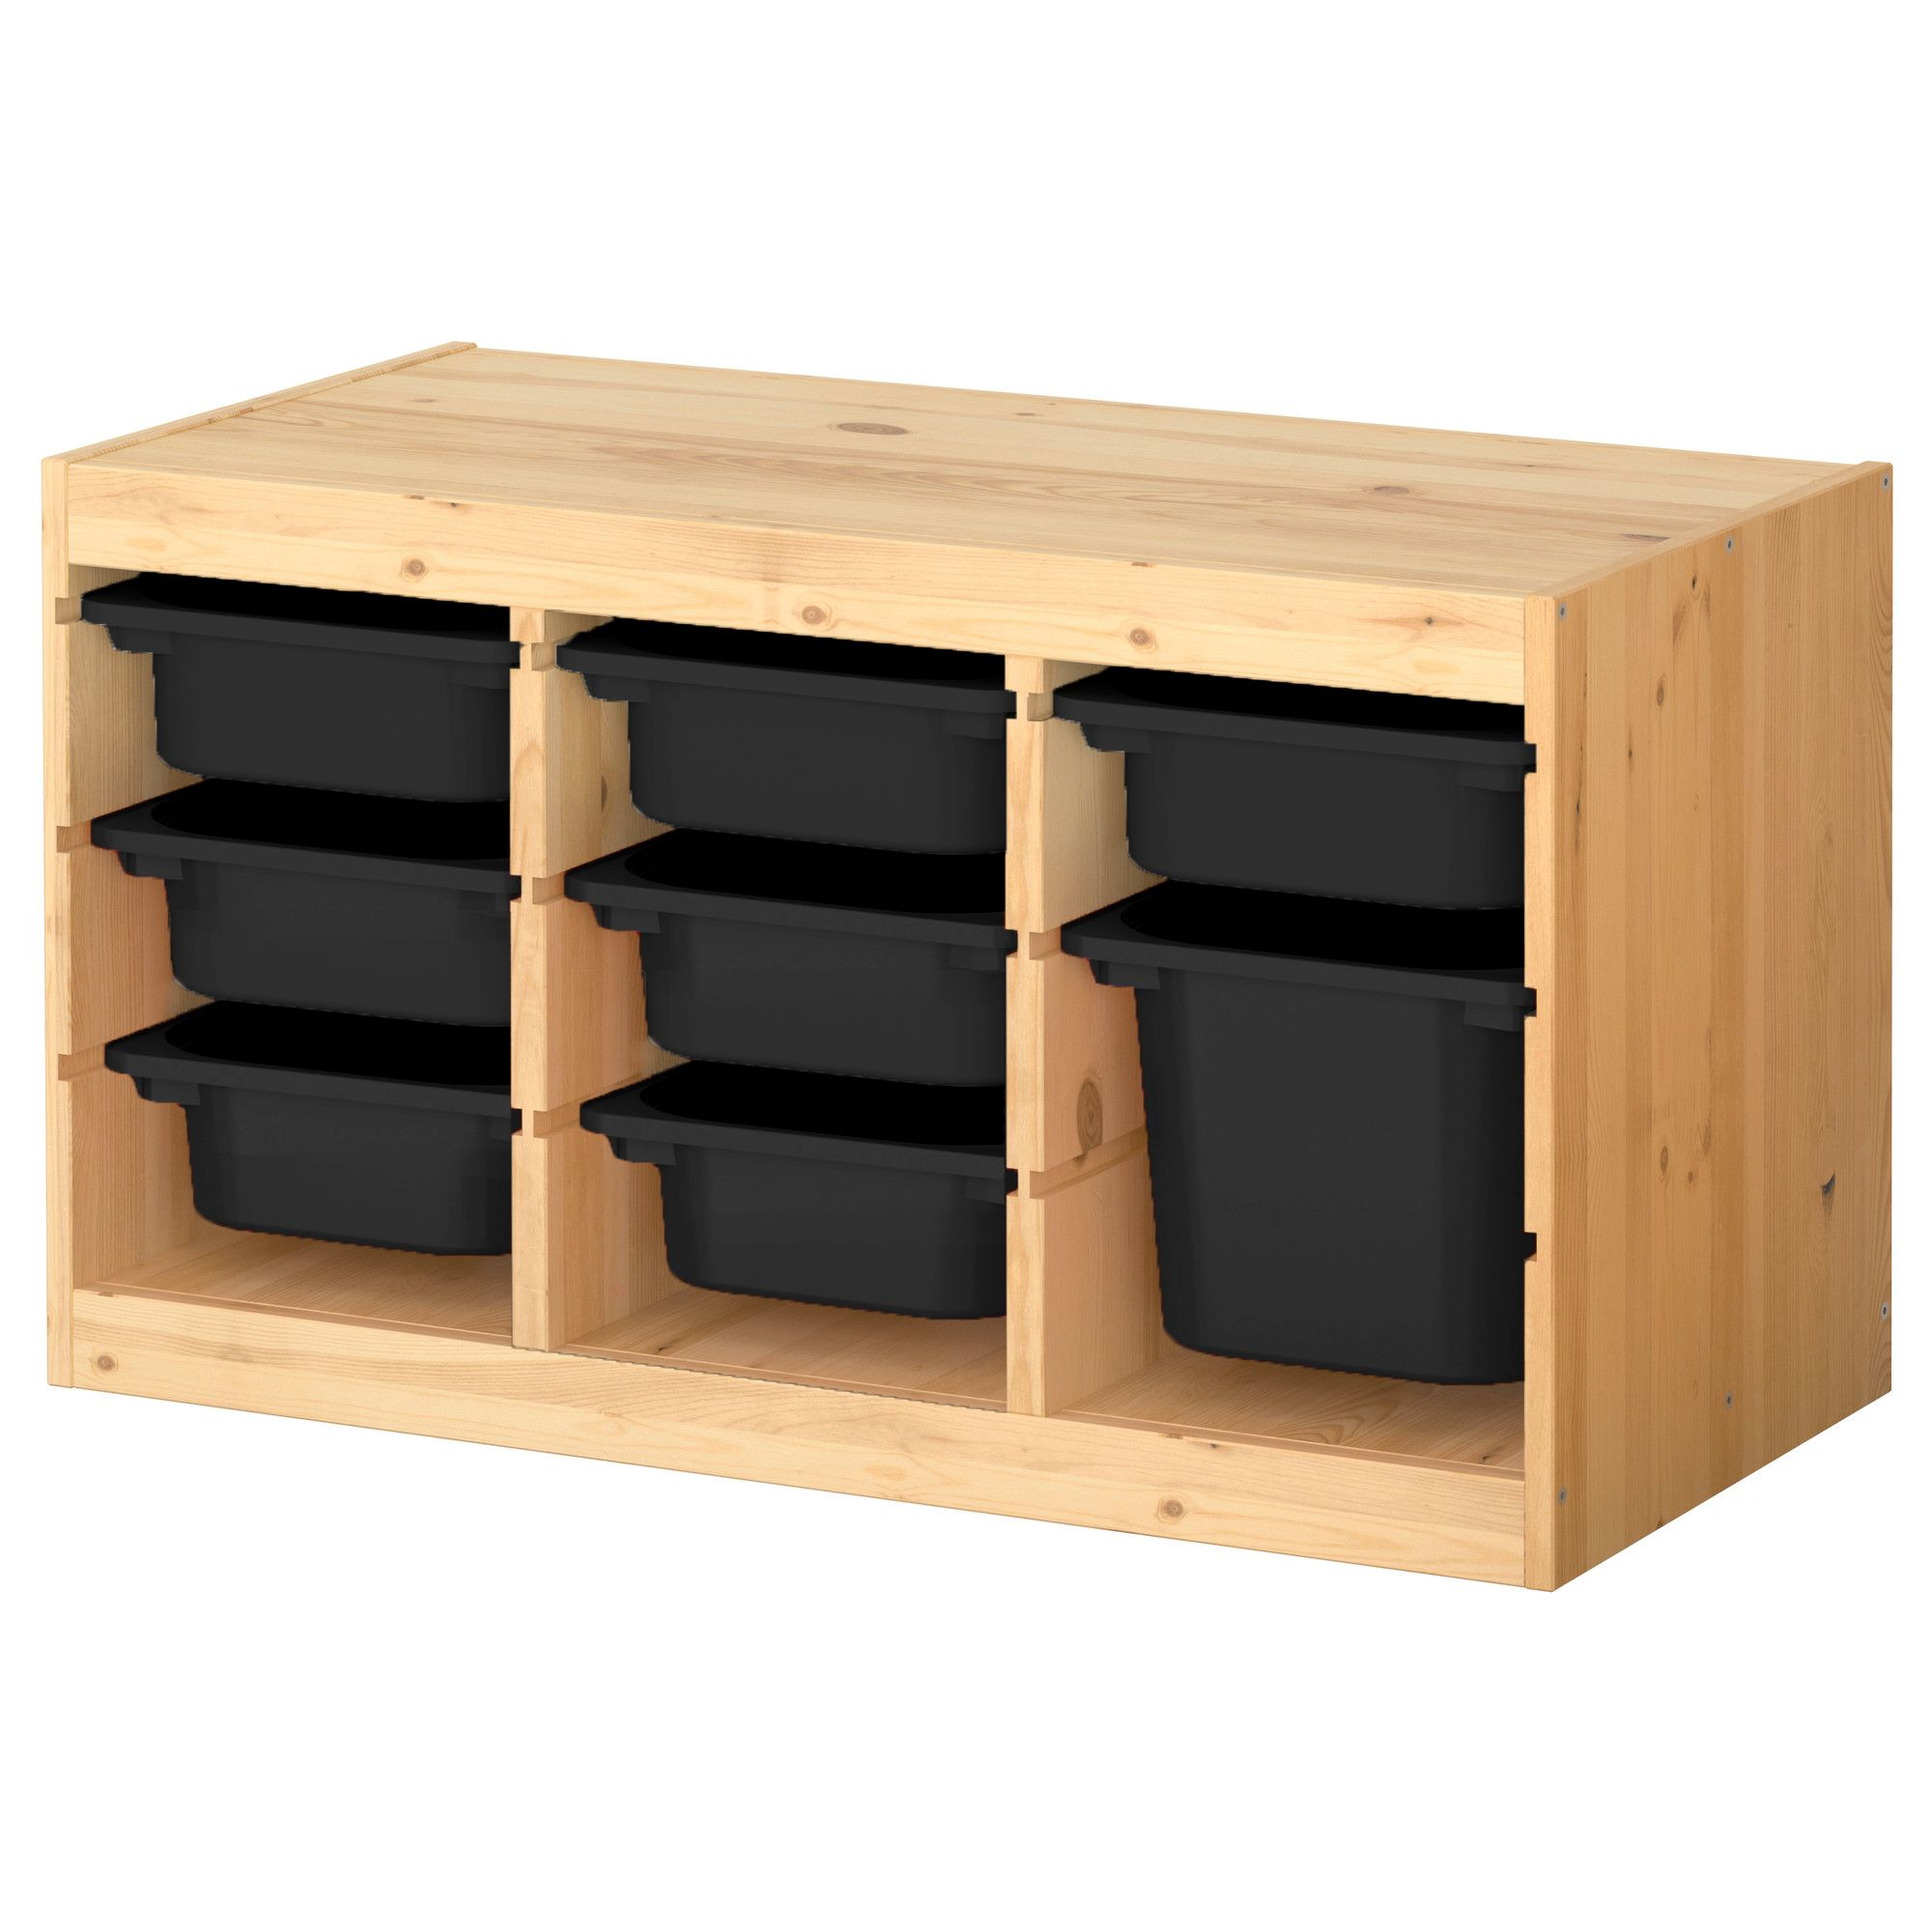 Ikea Trofast Setup With Black Bins For Studio Storage Deep